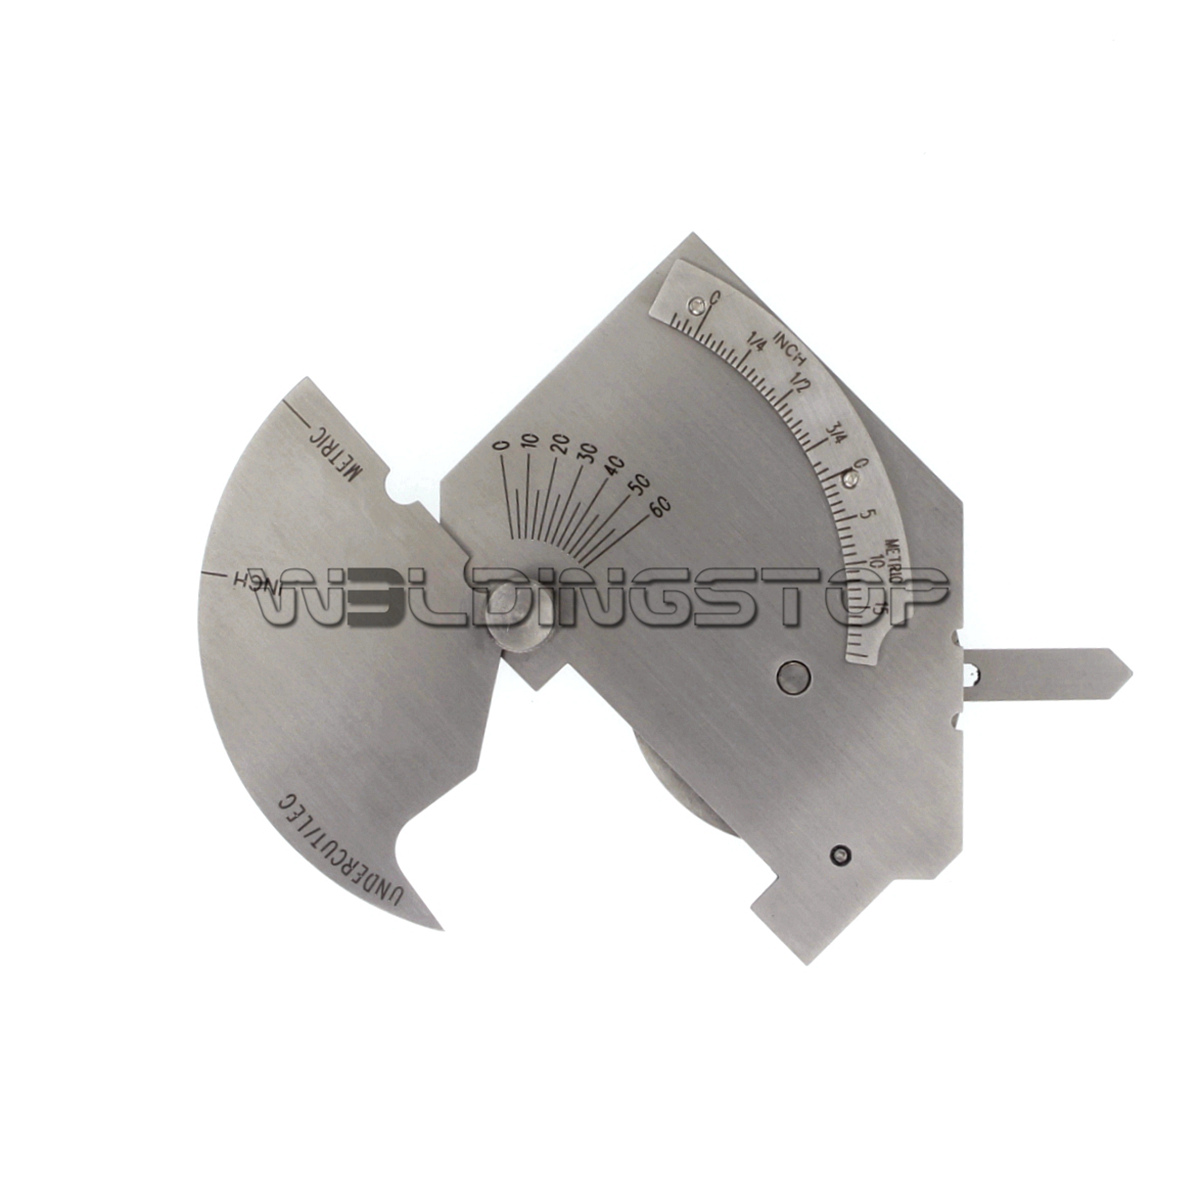 Bridge Cam Gauge Welding Fillet Throat Gage Bevel Angle Inch//mm Stainless Steel